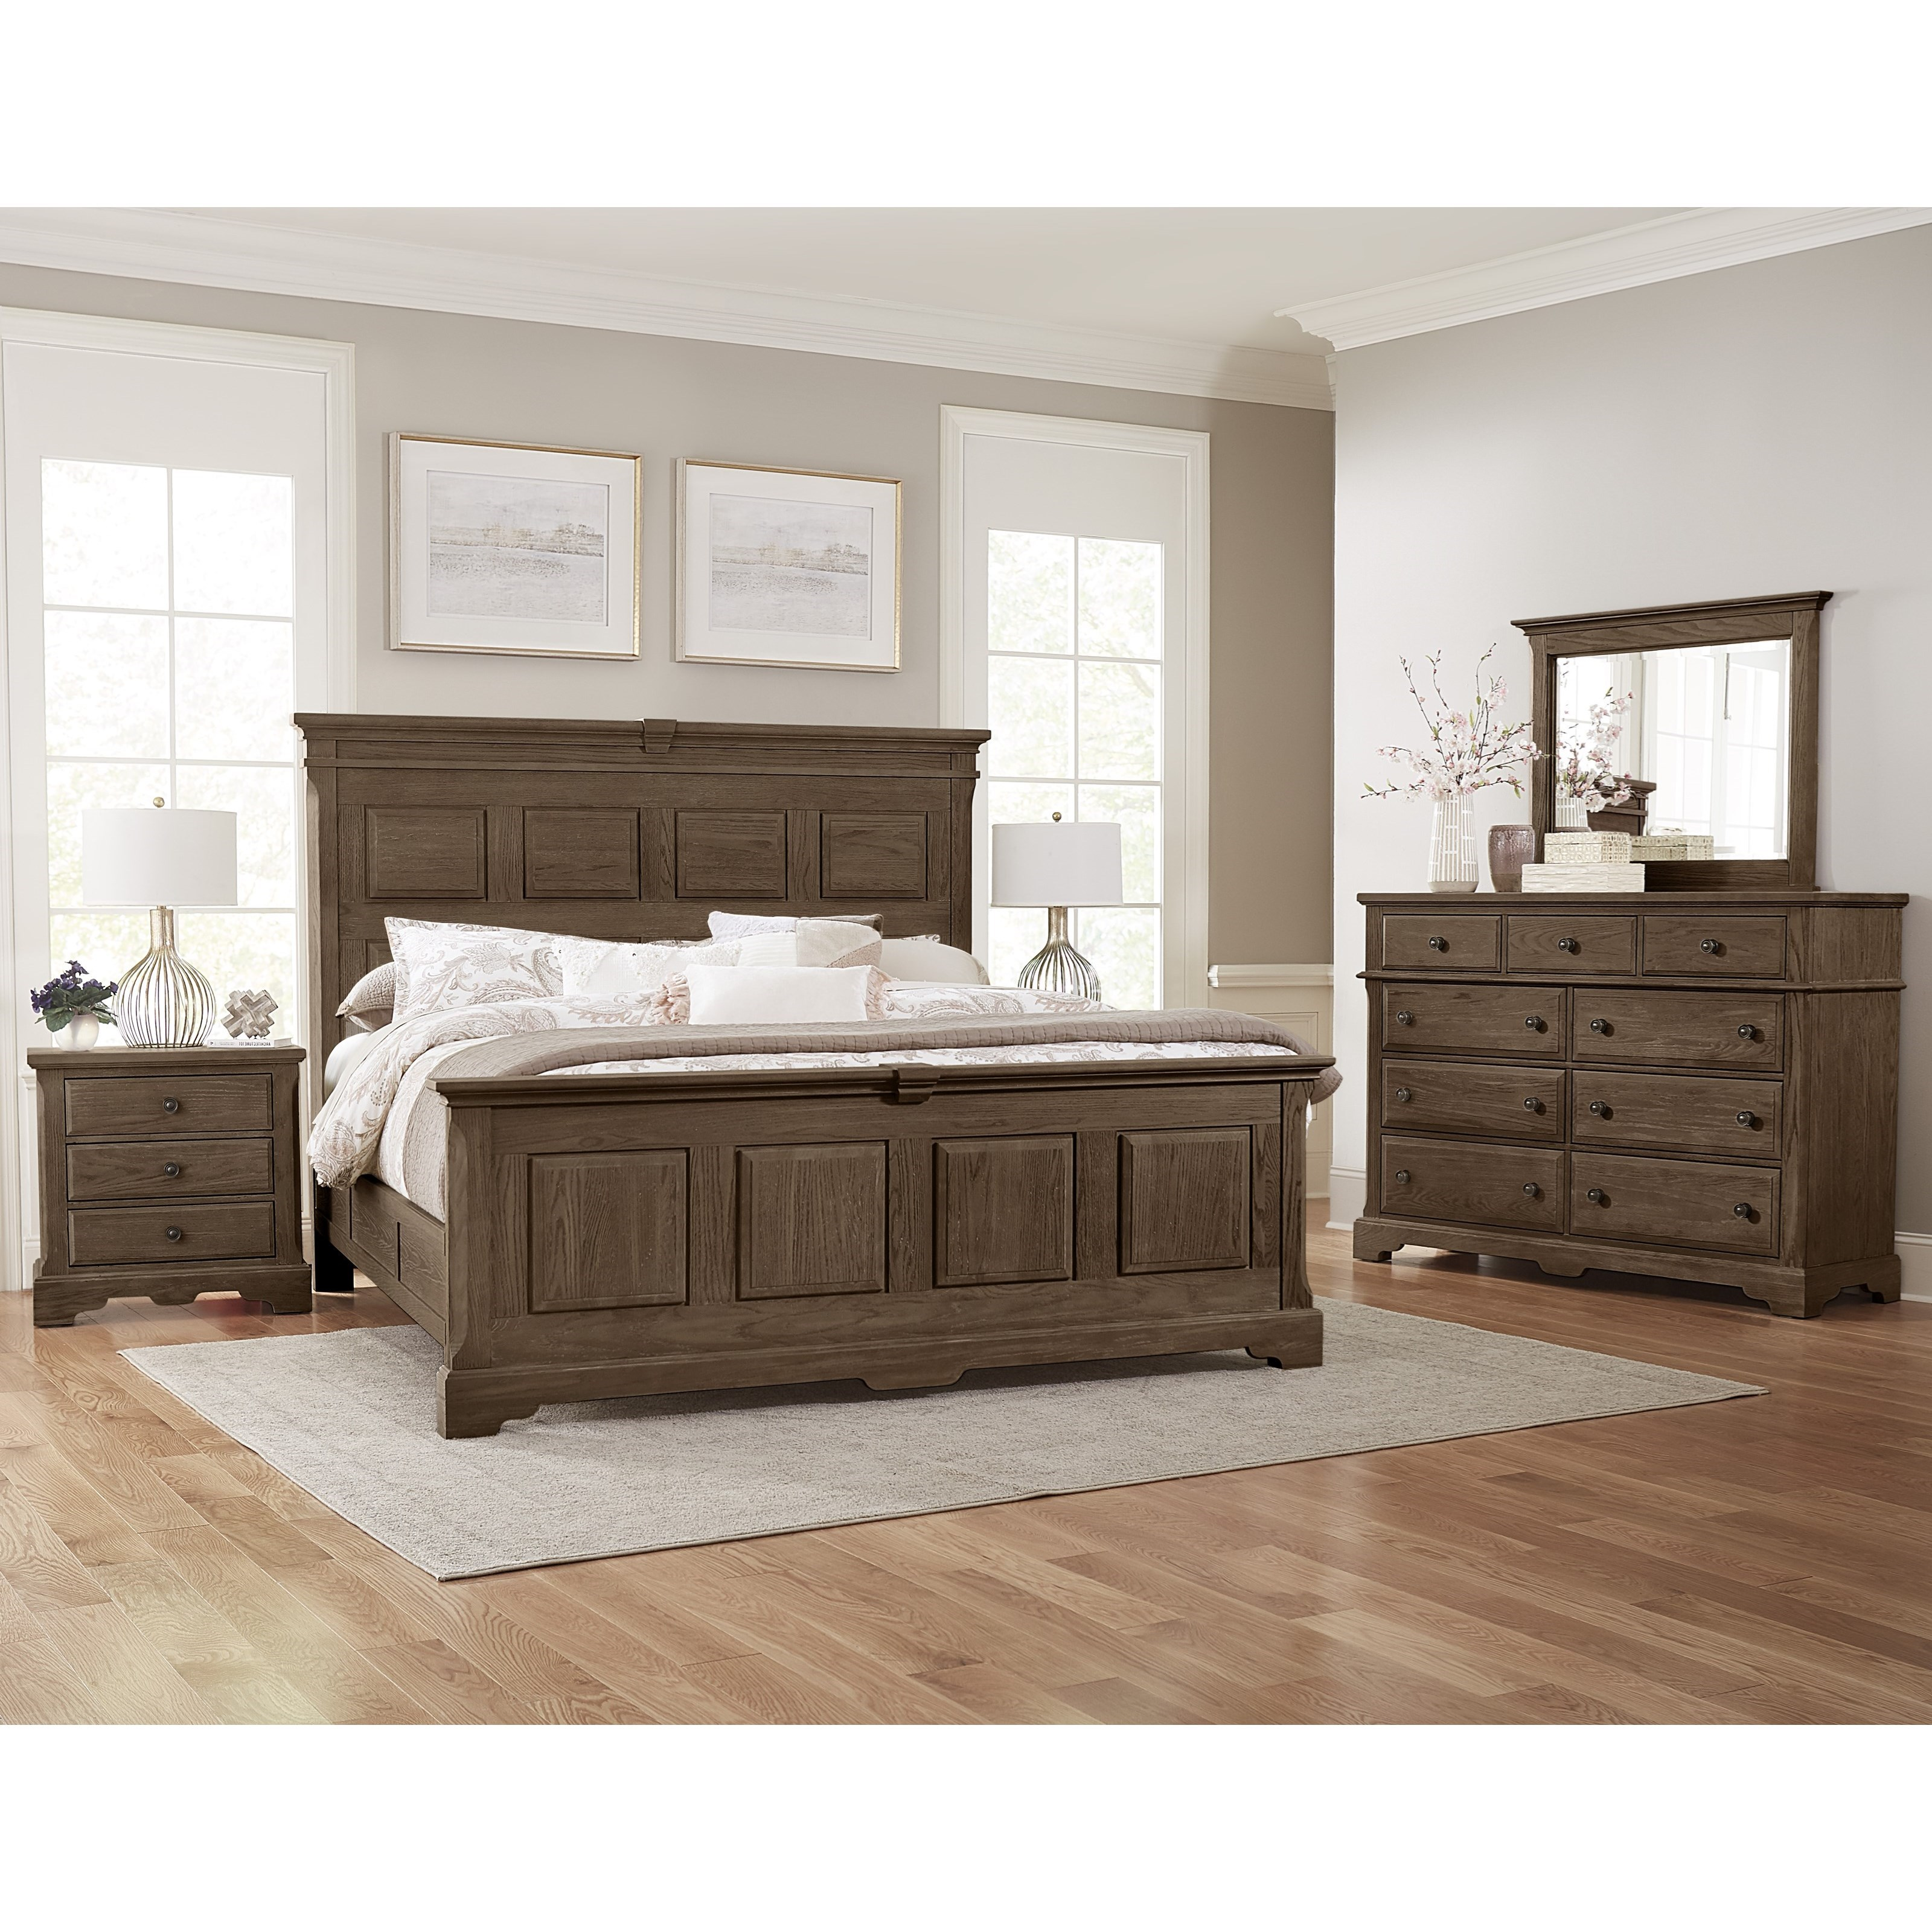 Heritage Queen Bedroom Group by Artisan & Post at Mueller Furniture